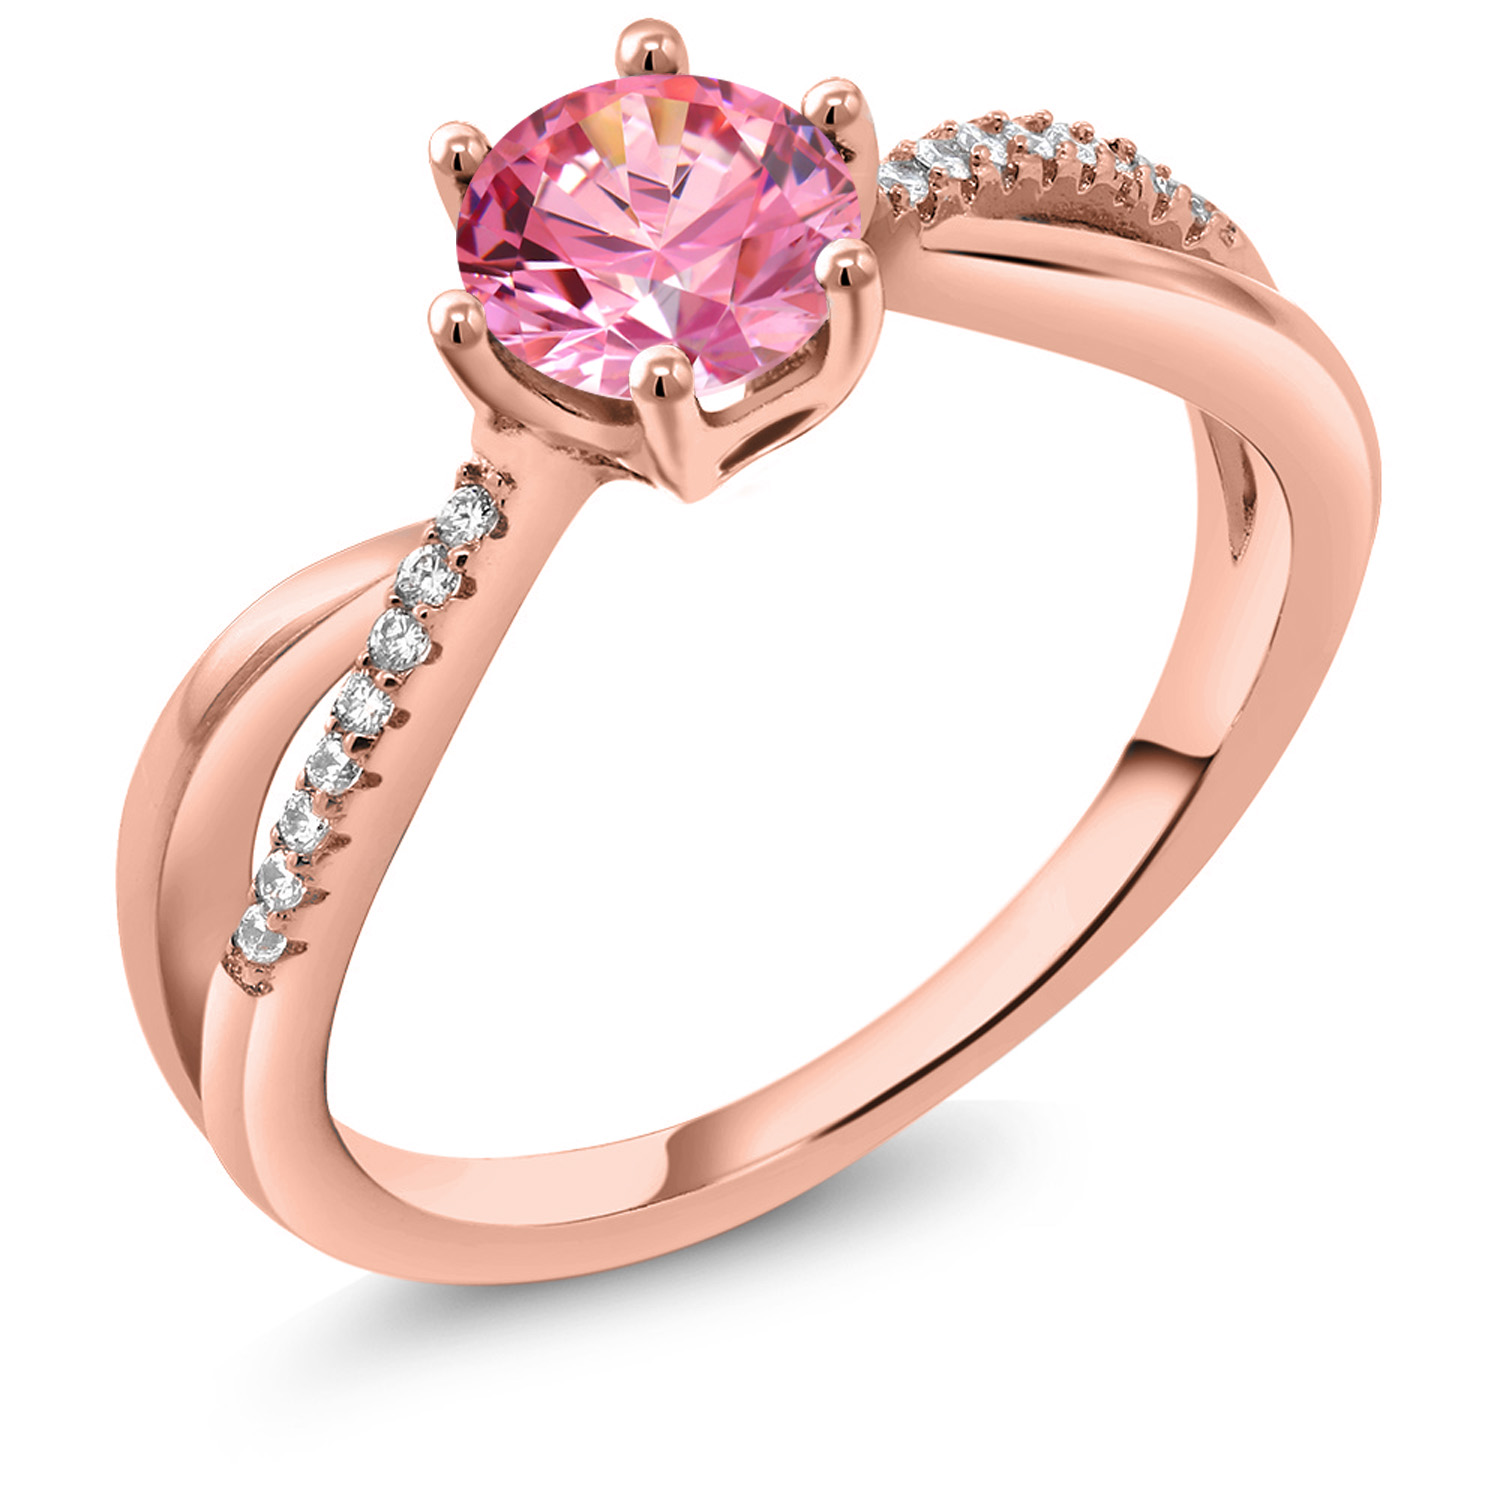 1aa9a13351 18K Rose Gold Plated Silver Ring Set with Fancy Pink Zirconia from Swarovski